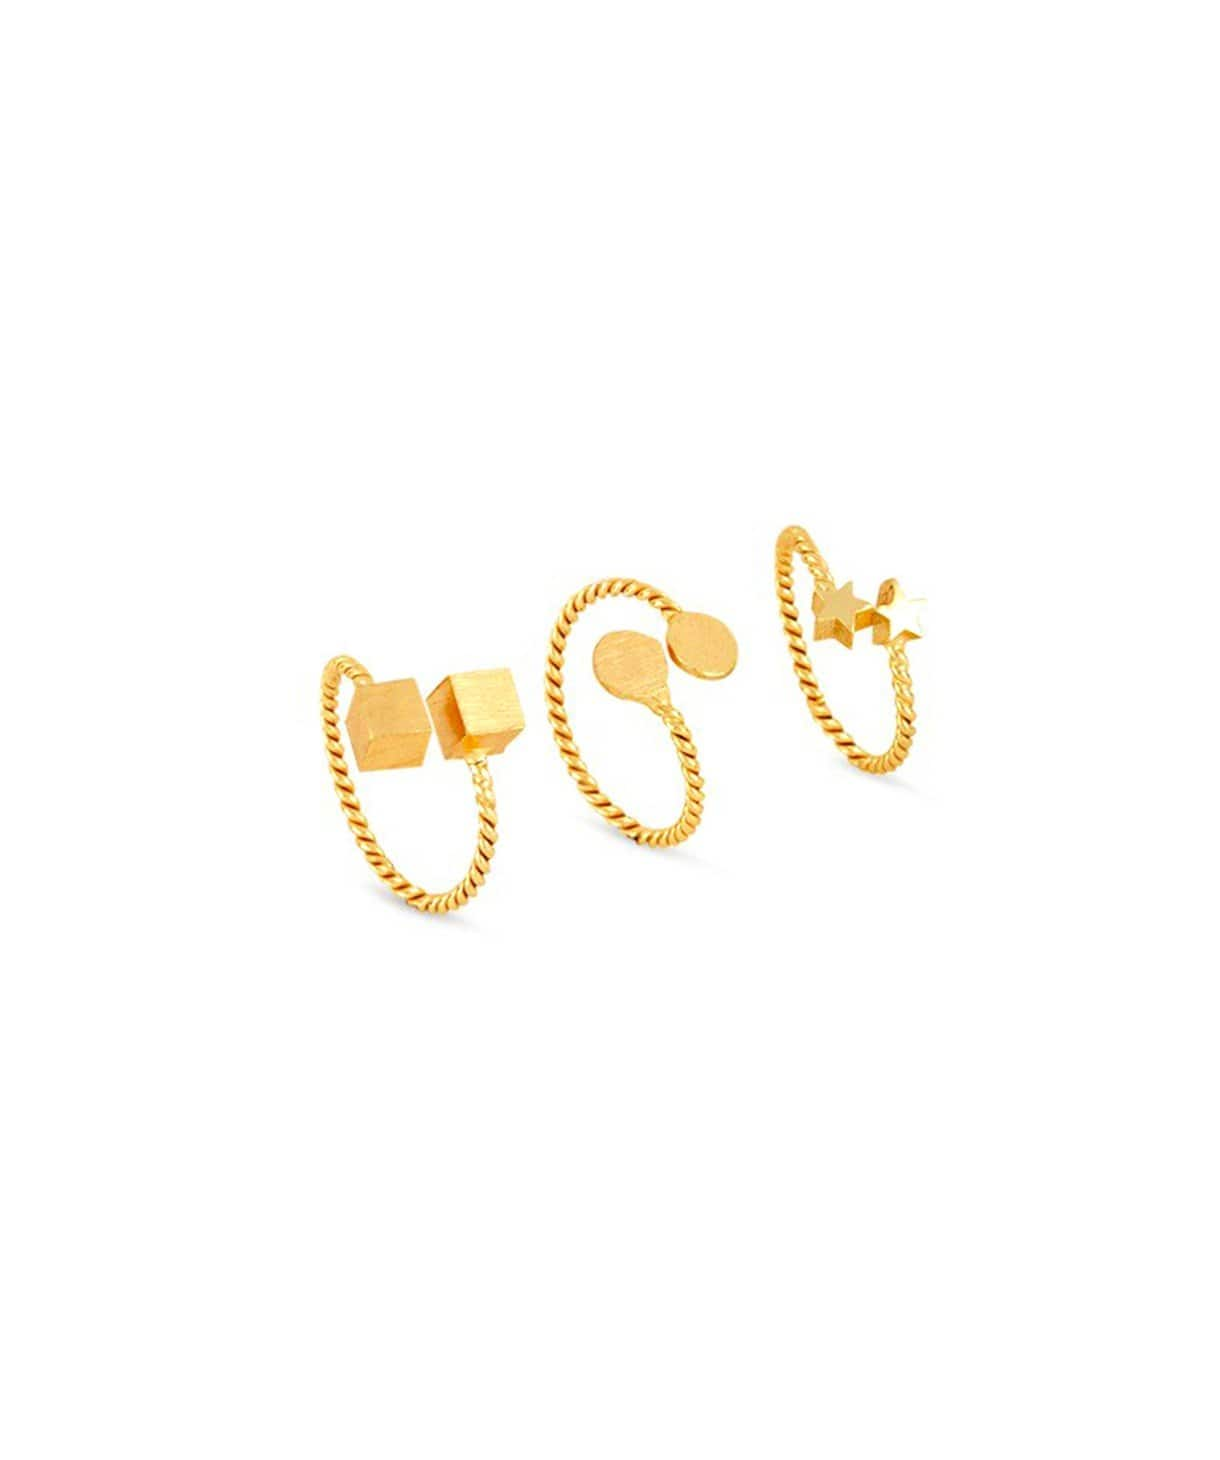 Shaped Gold Ring Set - Uptownie